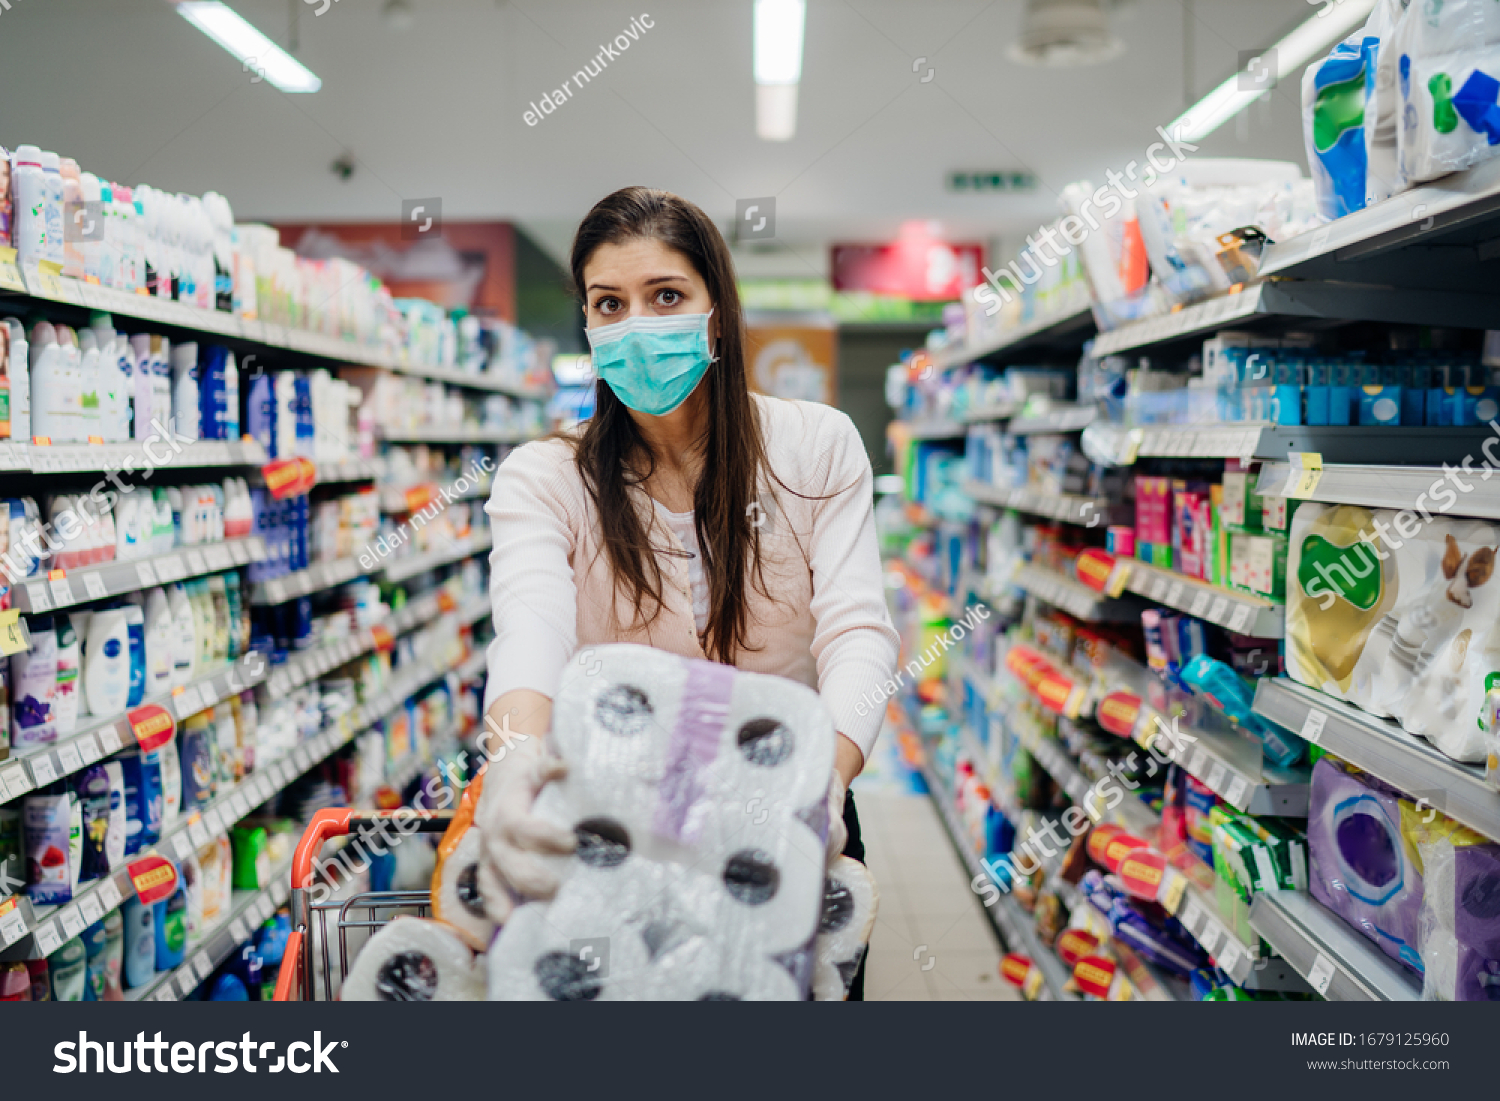 Woman shopper with mask and gloves panic buying and hoarding toilette paper in supply store.Preparing for pathogen virus pandemic quarantine.Prepper buying bulk cleaning supplies due to Covid-19. #1679125960